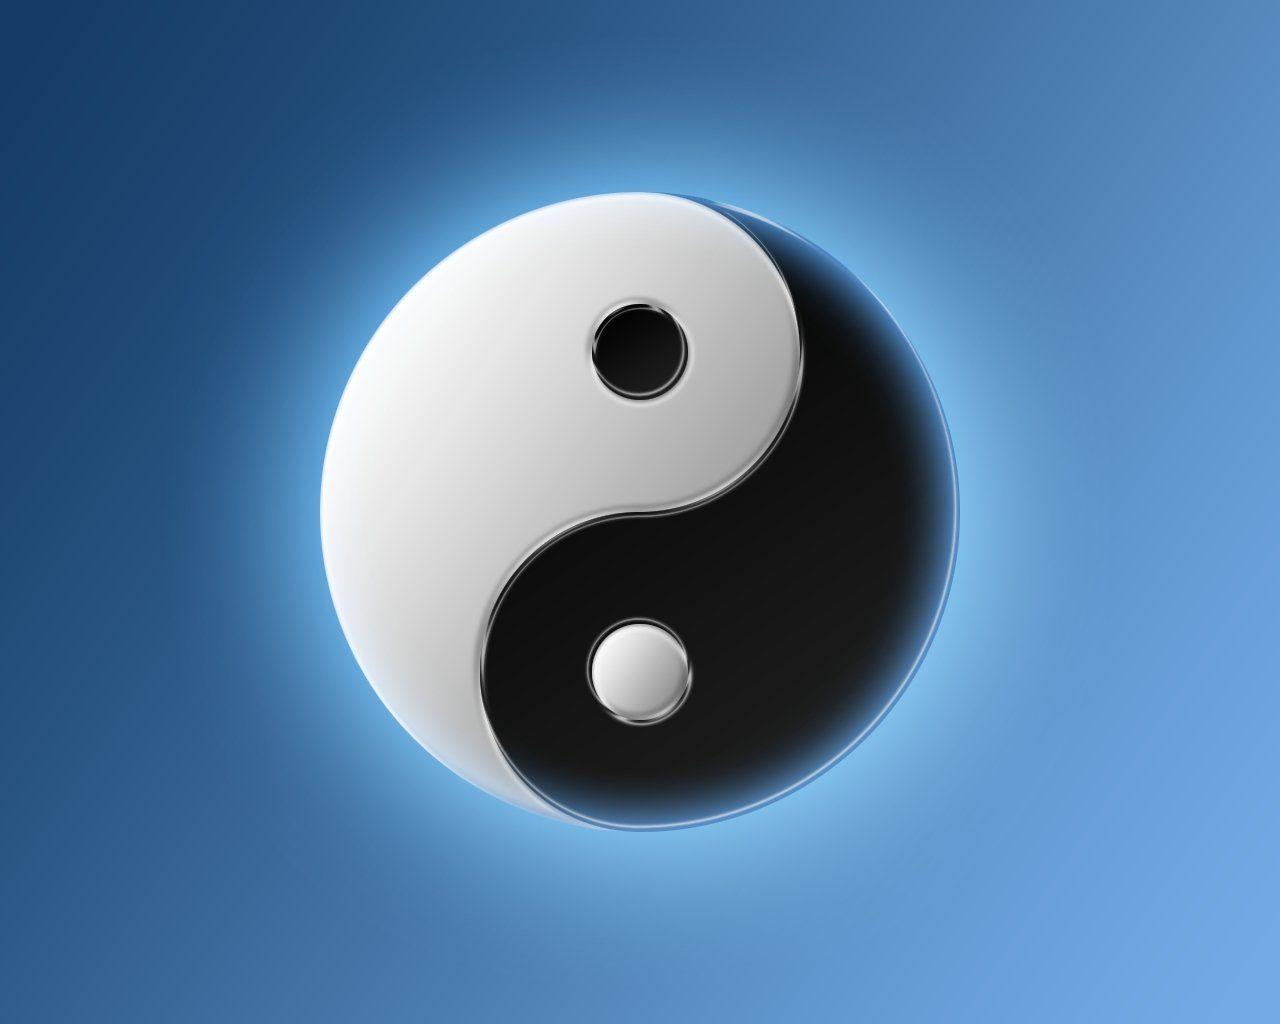 HD Ying Yang Wallpapers 1920×1080 Yin Yang Wallpapers